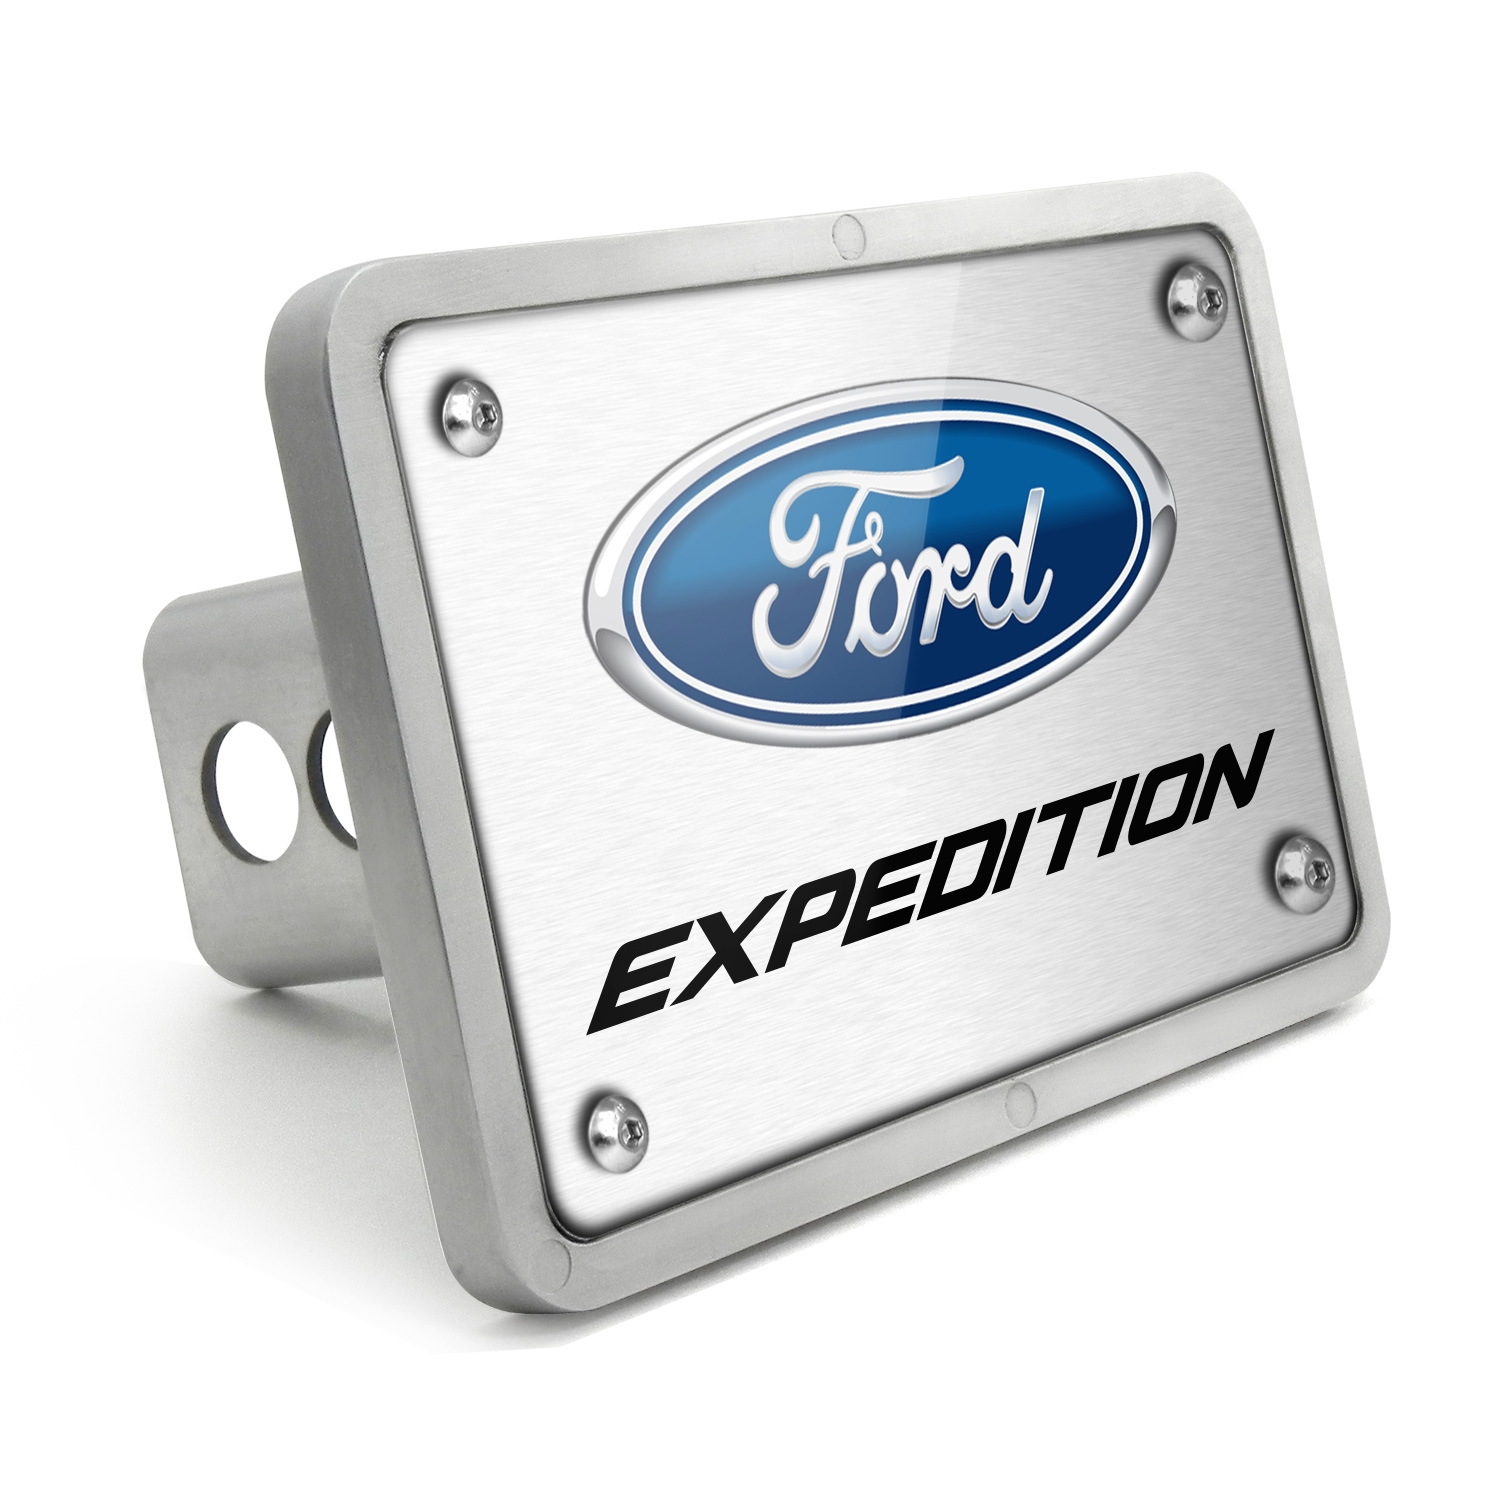 Ford Expedition UV Graphic Brushed Silver Billet Aluminum 2 inch Tow Hitch Cover